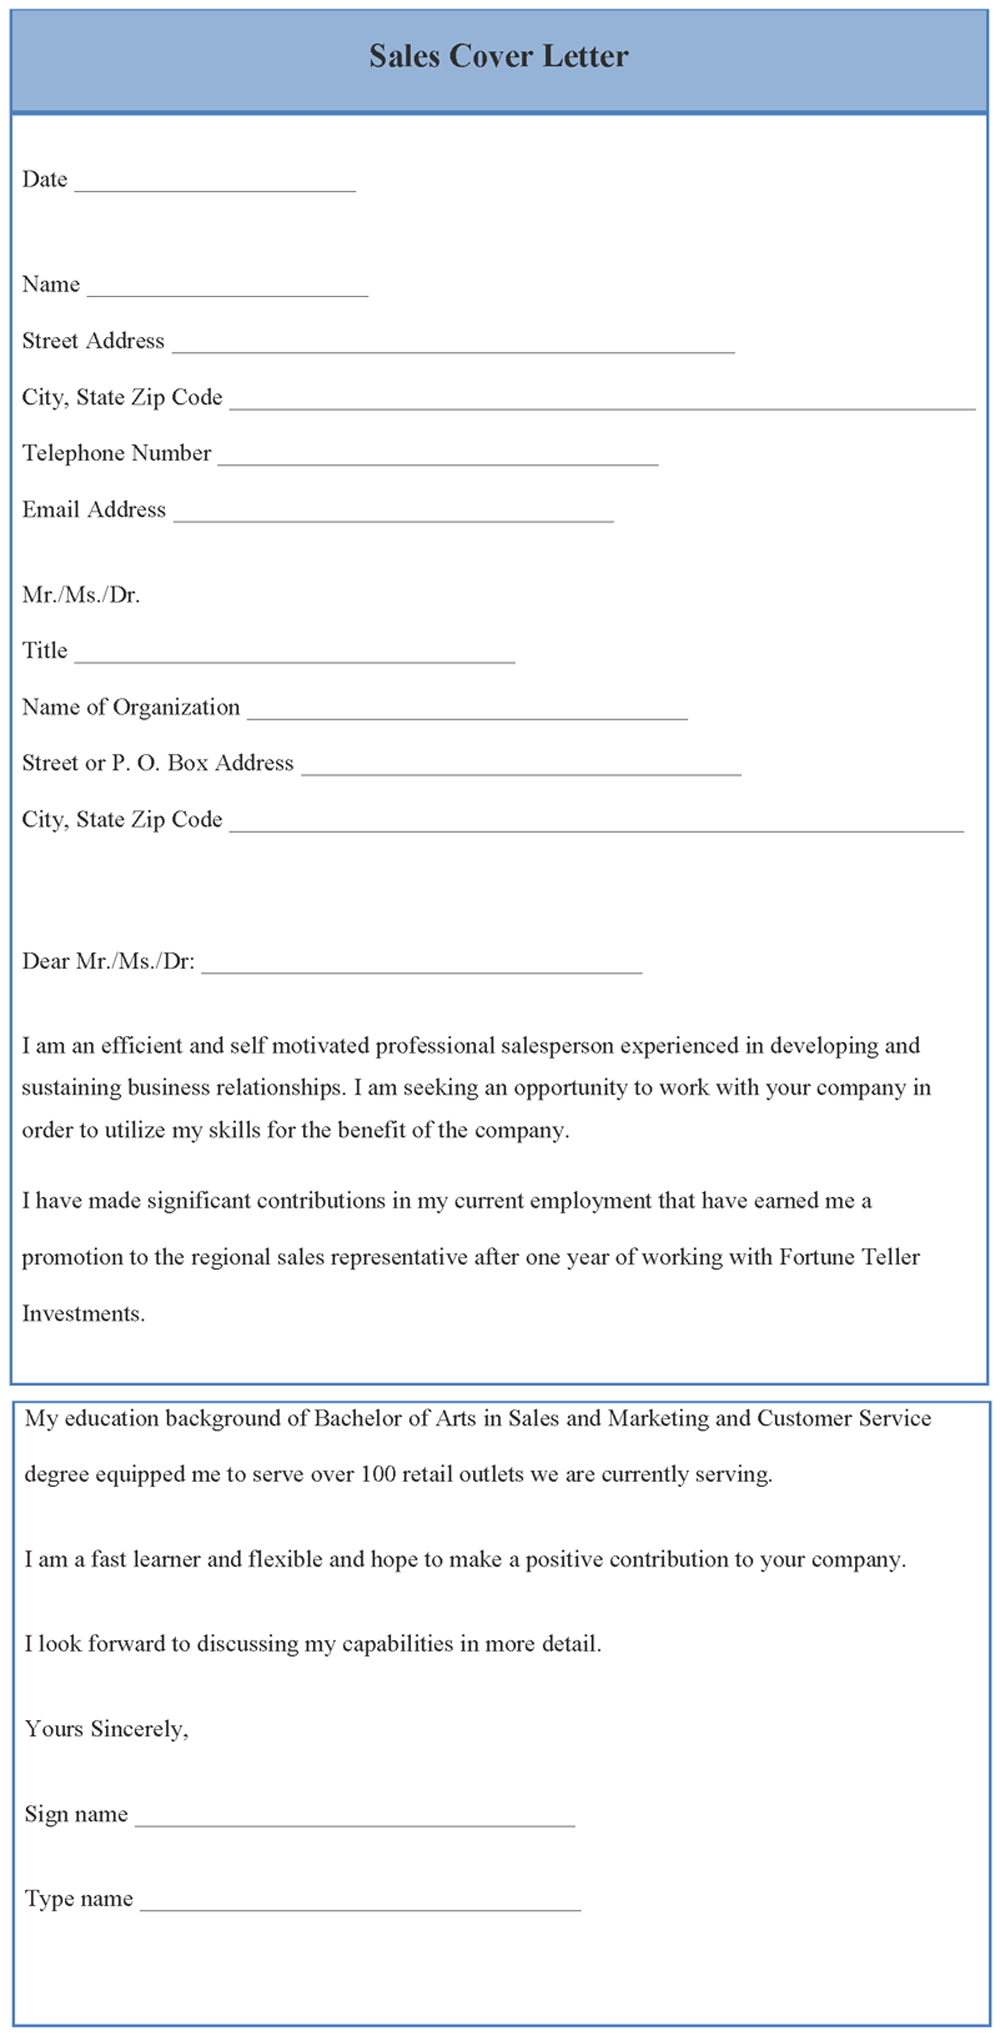 Sales Cover Letter Template Editable Docs Cover letter